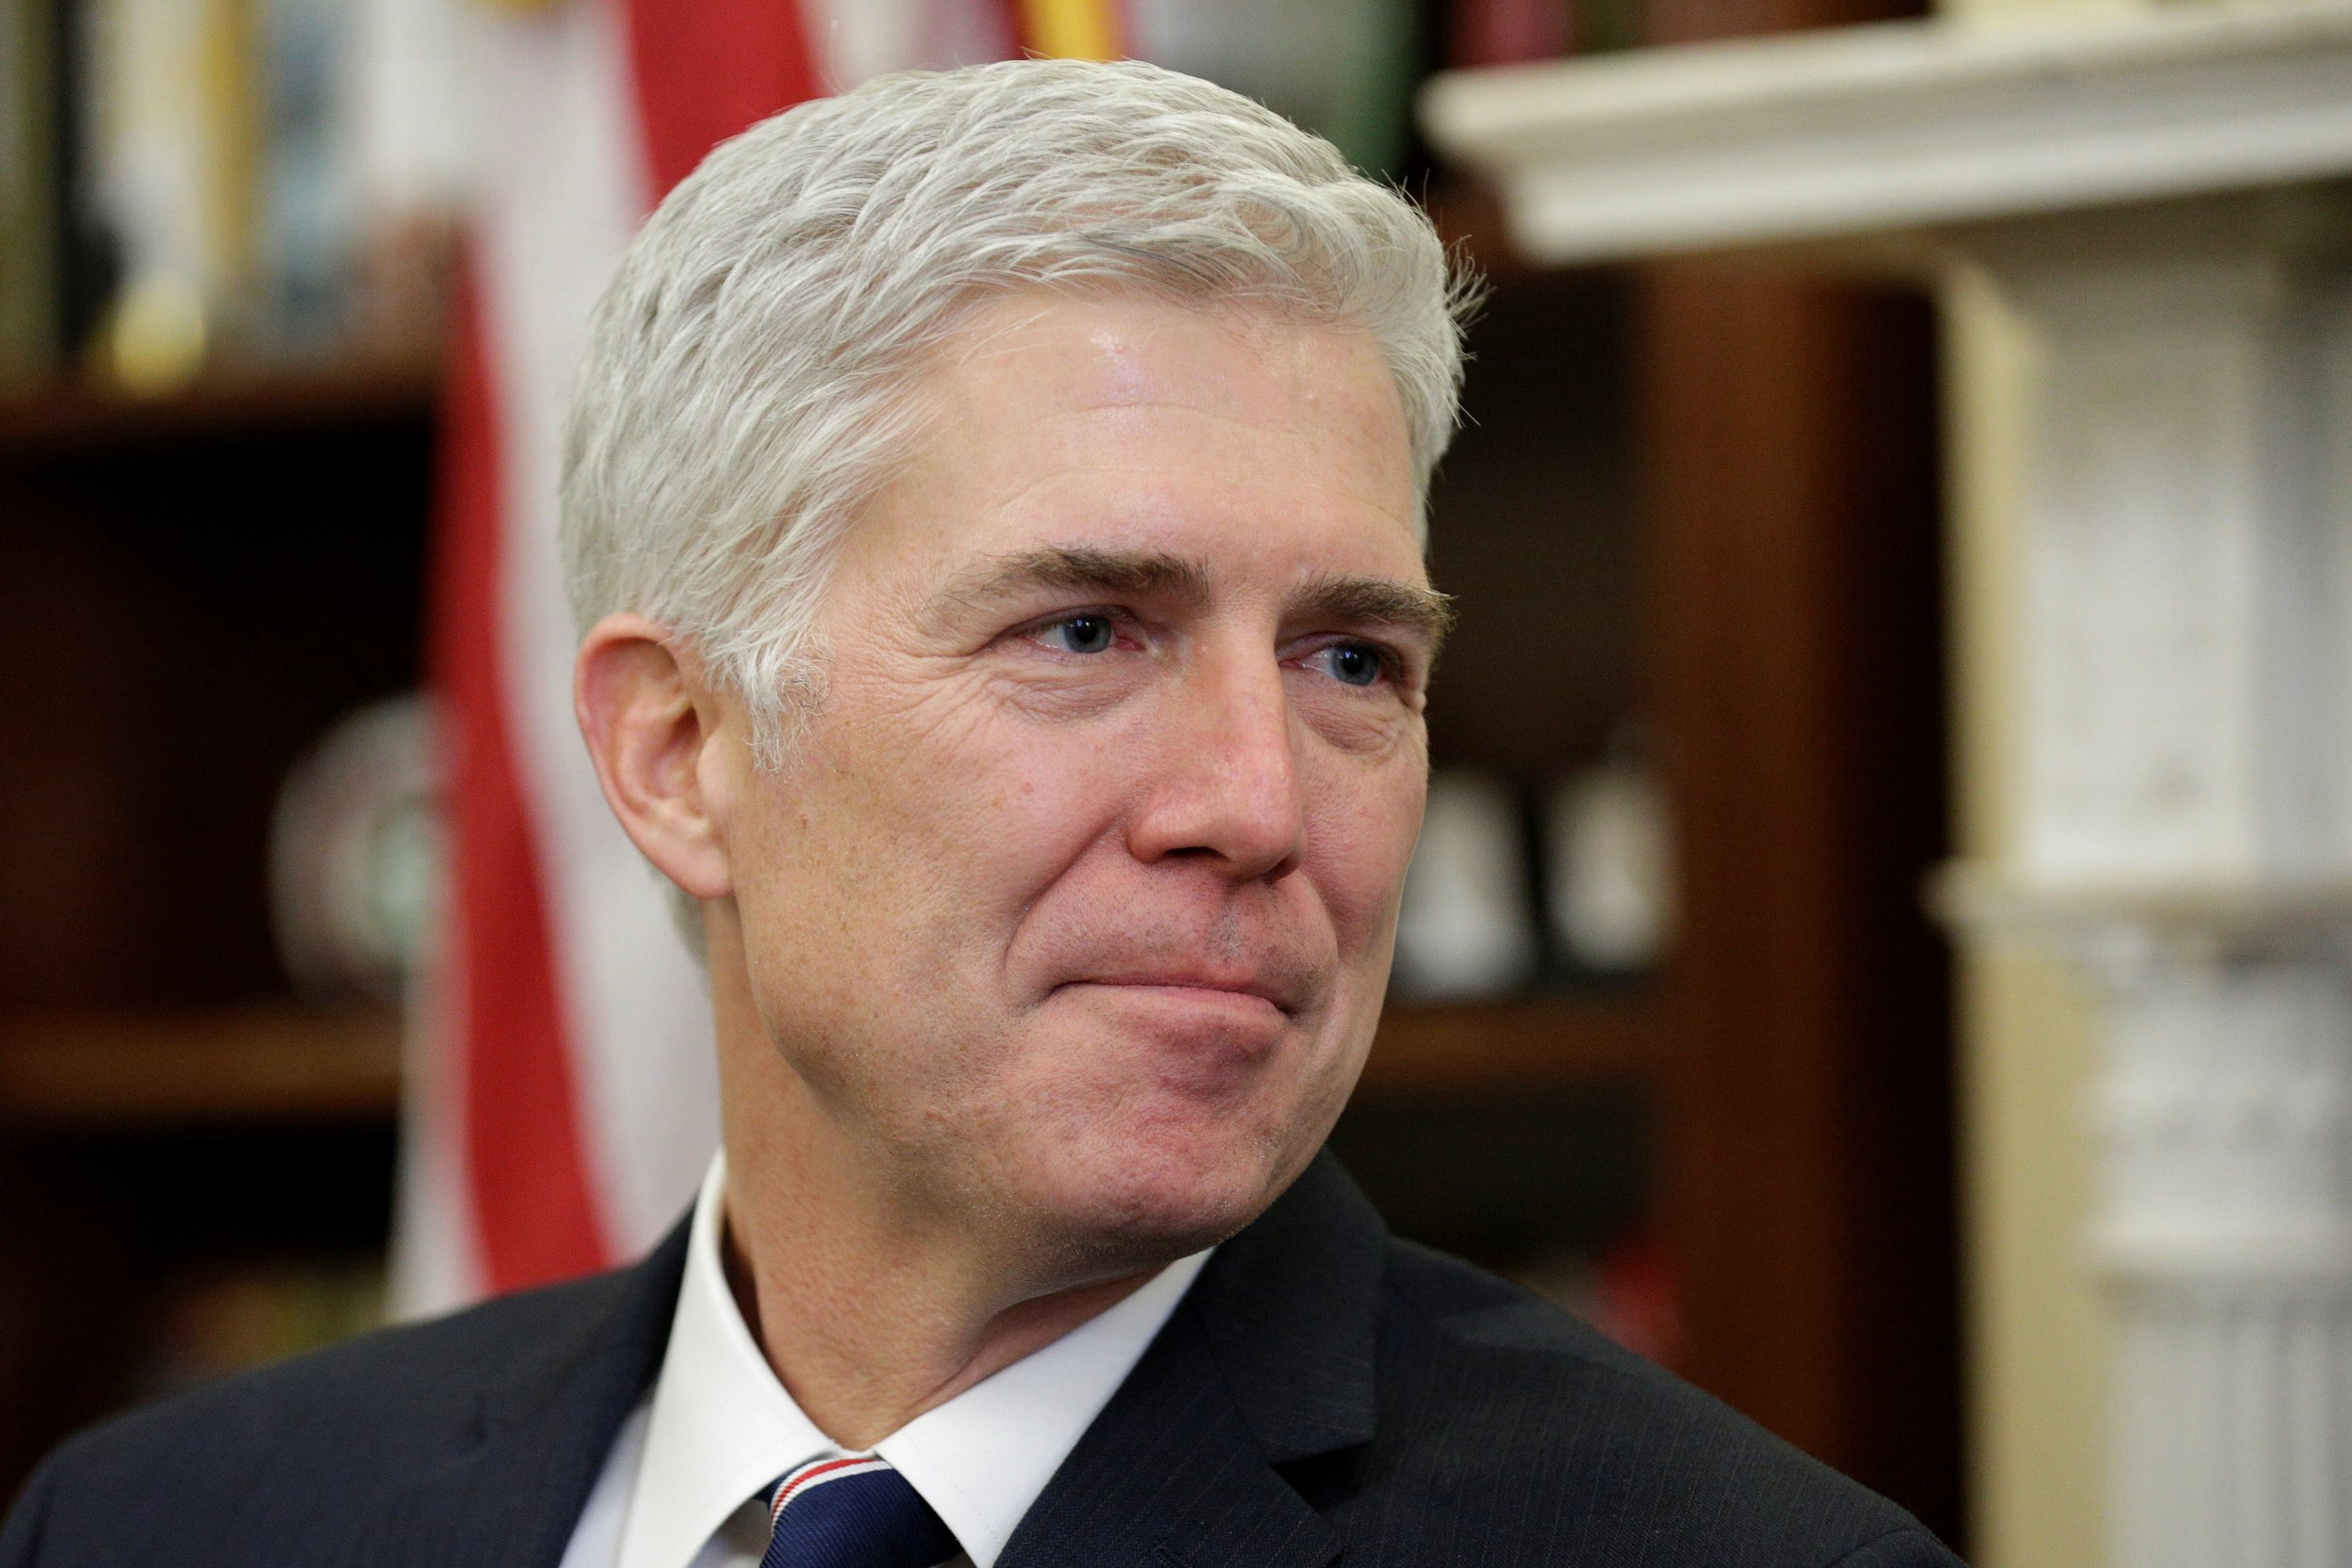 Gun Lobby May Have Their Man in Neil Gorsuch, Supreme Court Nominee